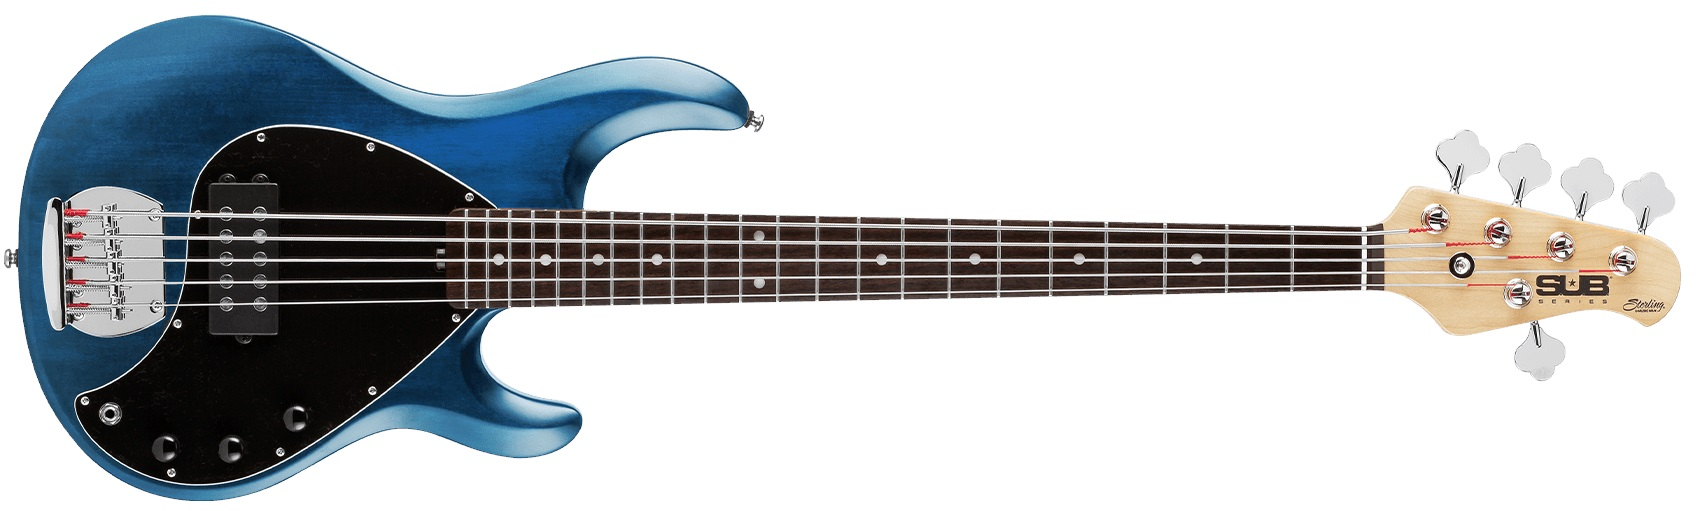 Sterling by Music Man SUB StingRay5 Trans Blue Satin